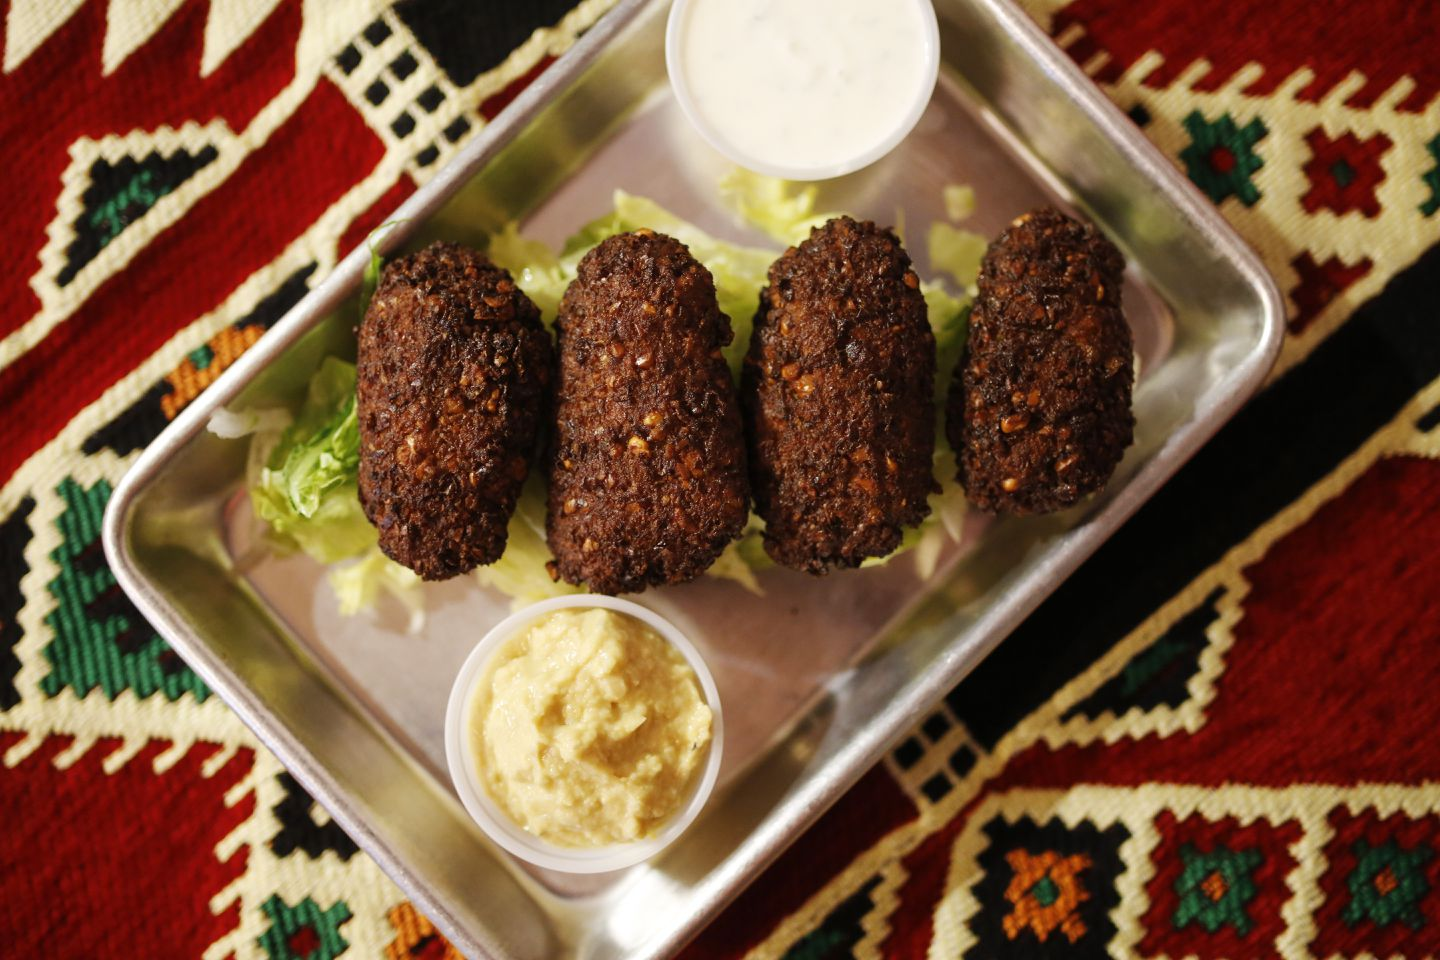 Paprika Grill makes falafel to order to maintain the food's soft interior and crunchy exterior.